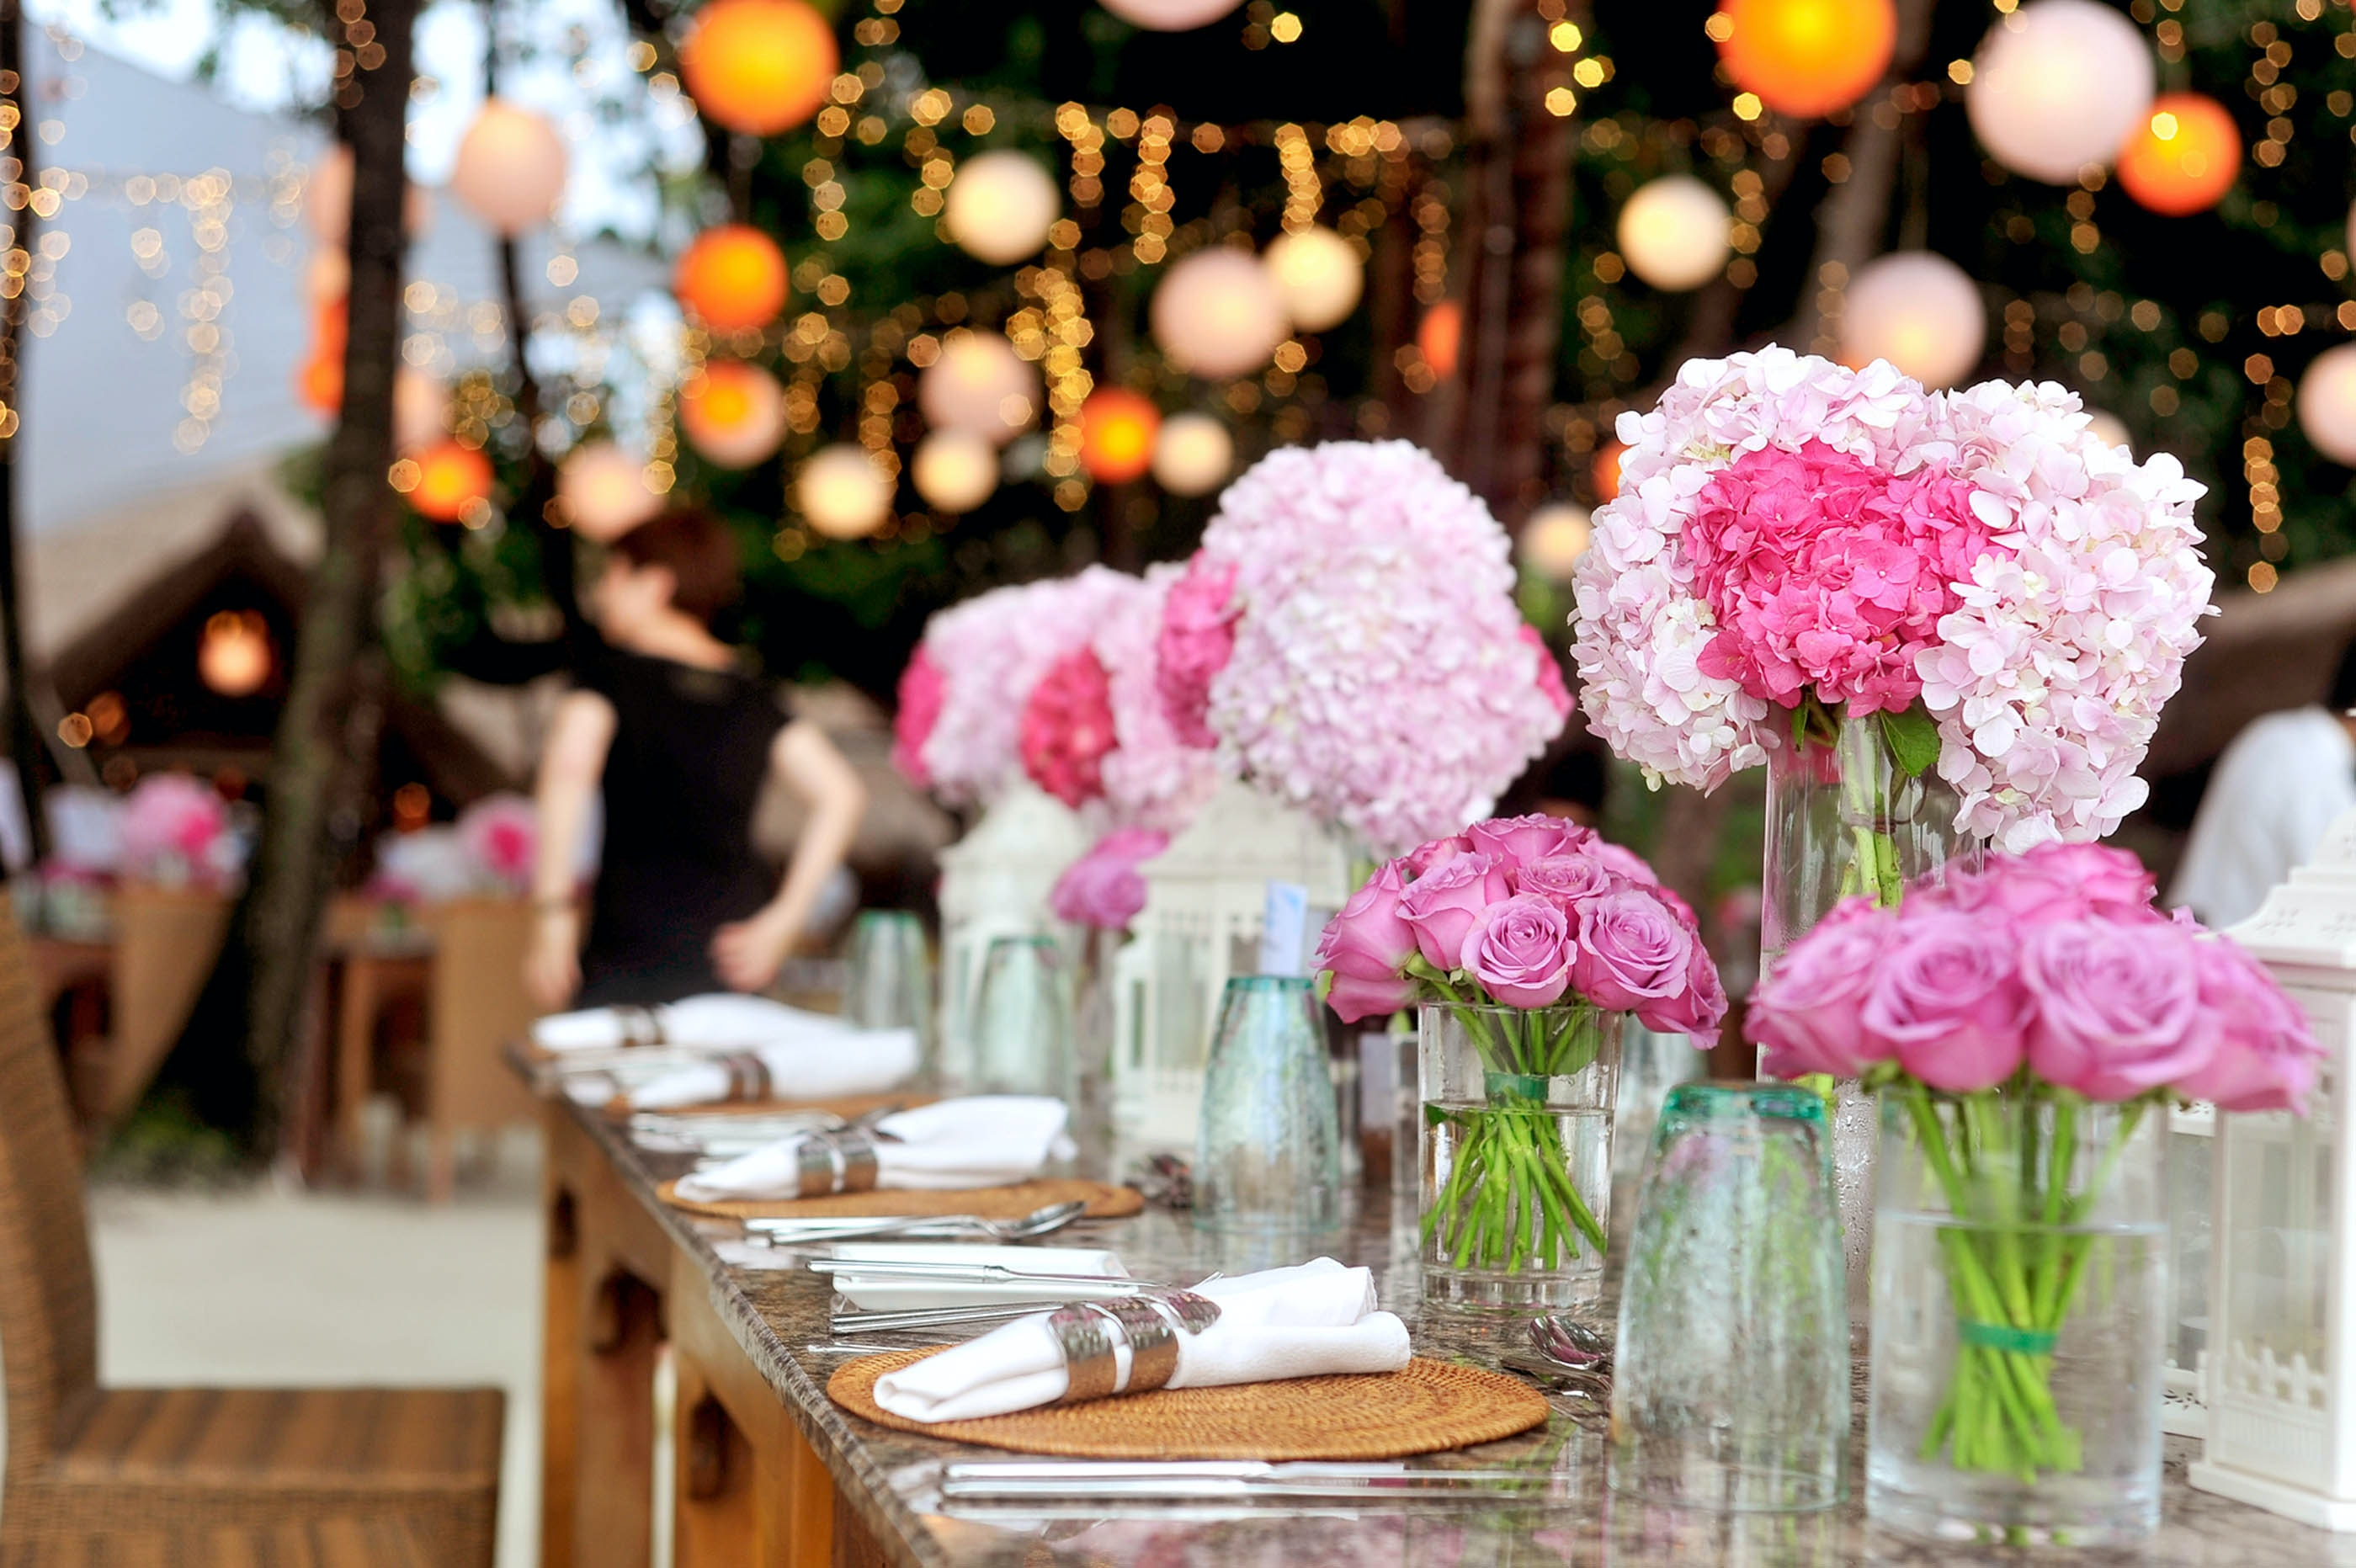 table-with-plates-and-flowers-filed-neatly-selective-focus-169190.jpg